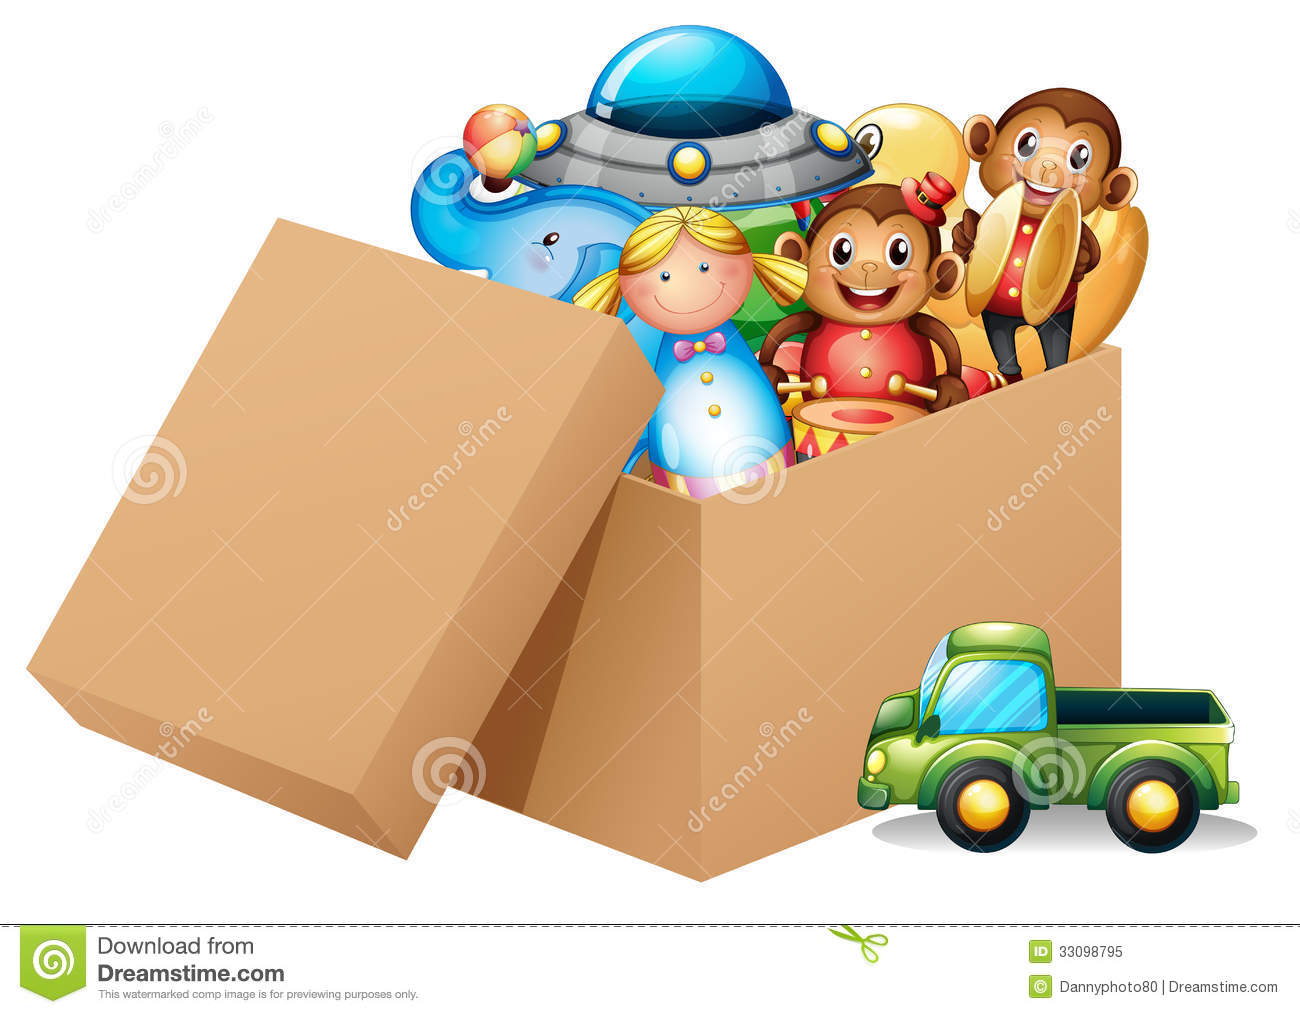 Illustration of a box full of different toys on a white background.